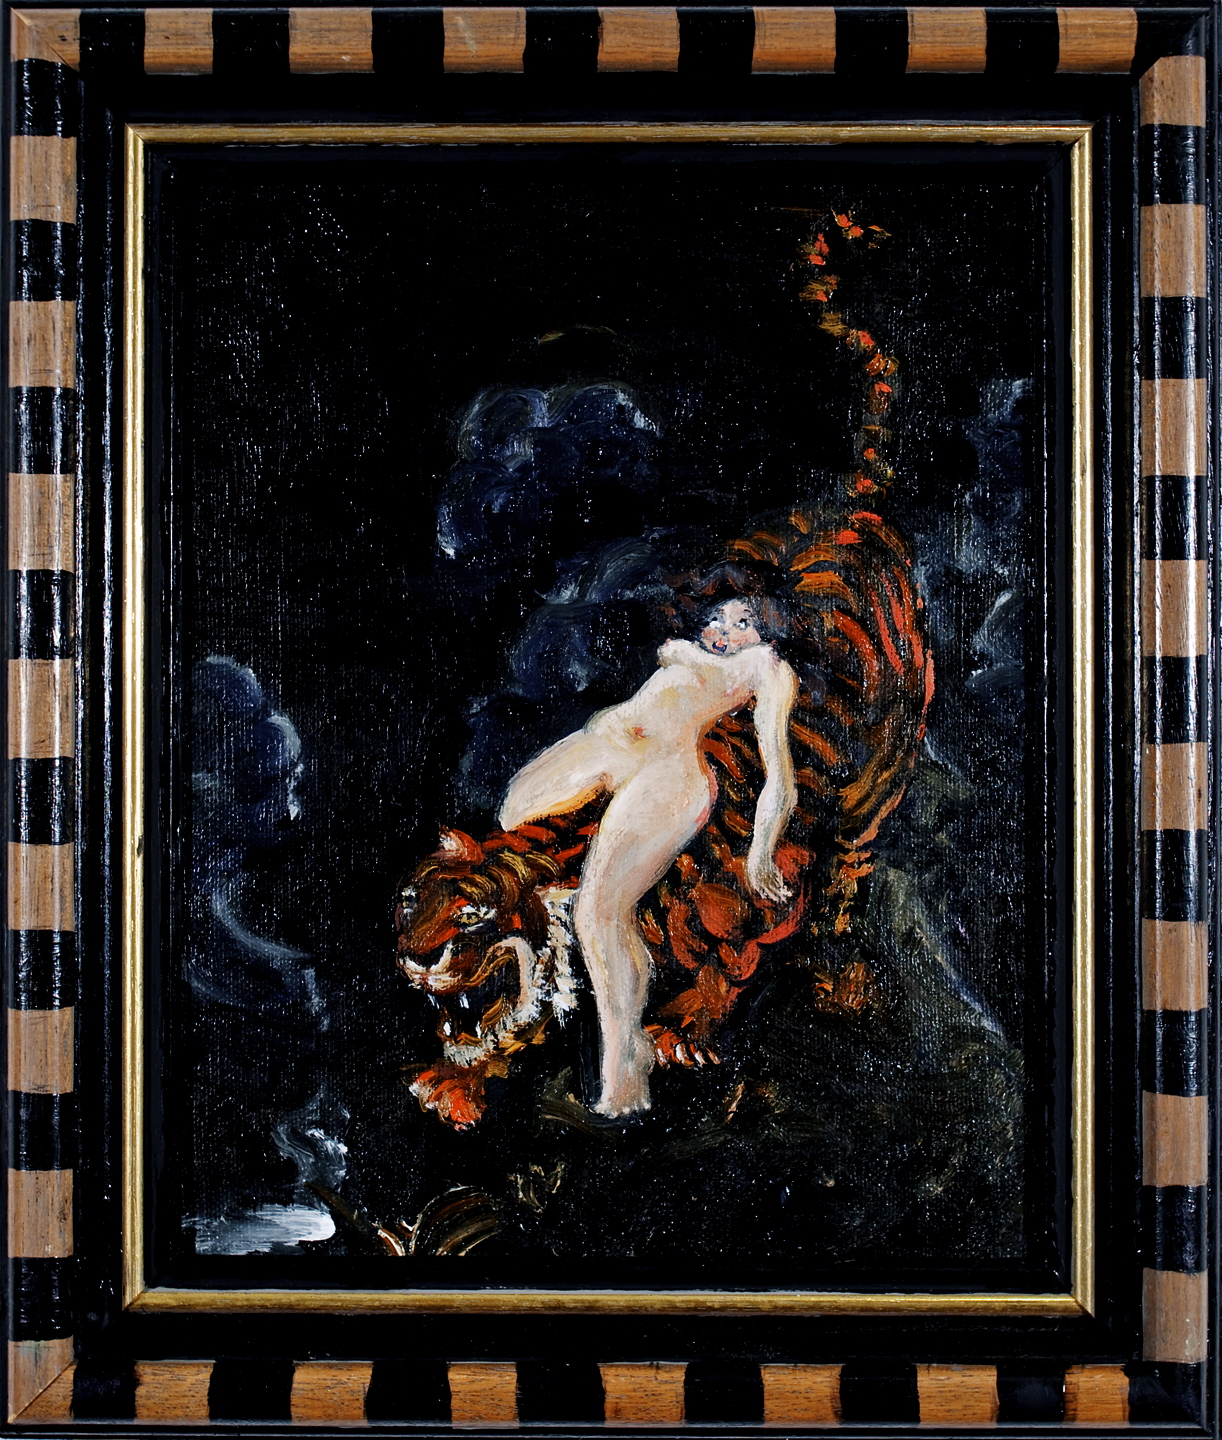 Girl on Tiger, oil on canvas and frame